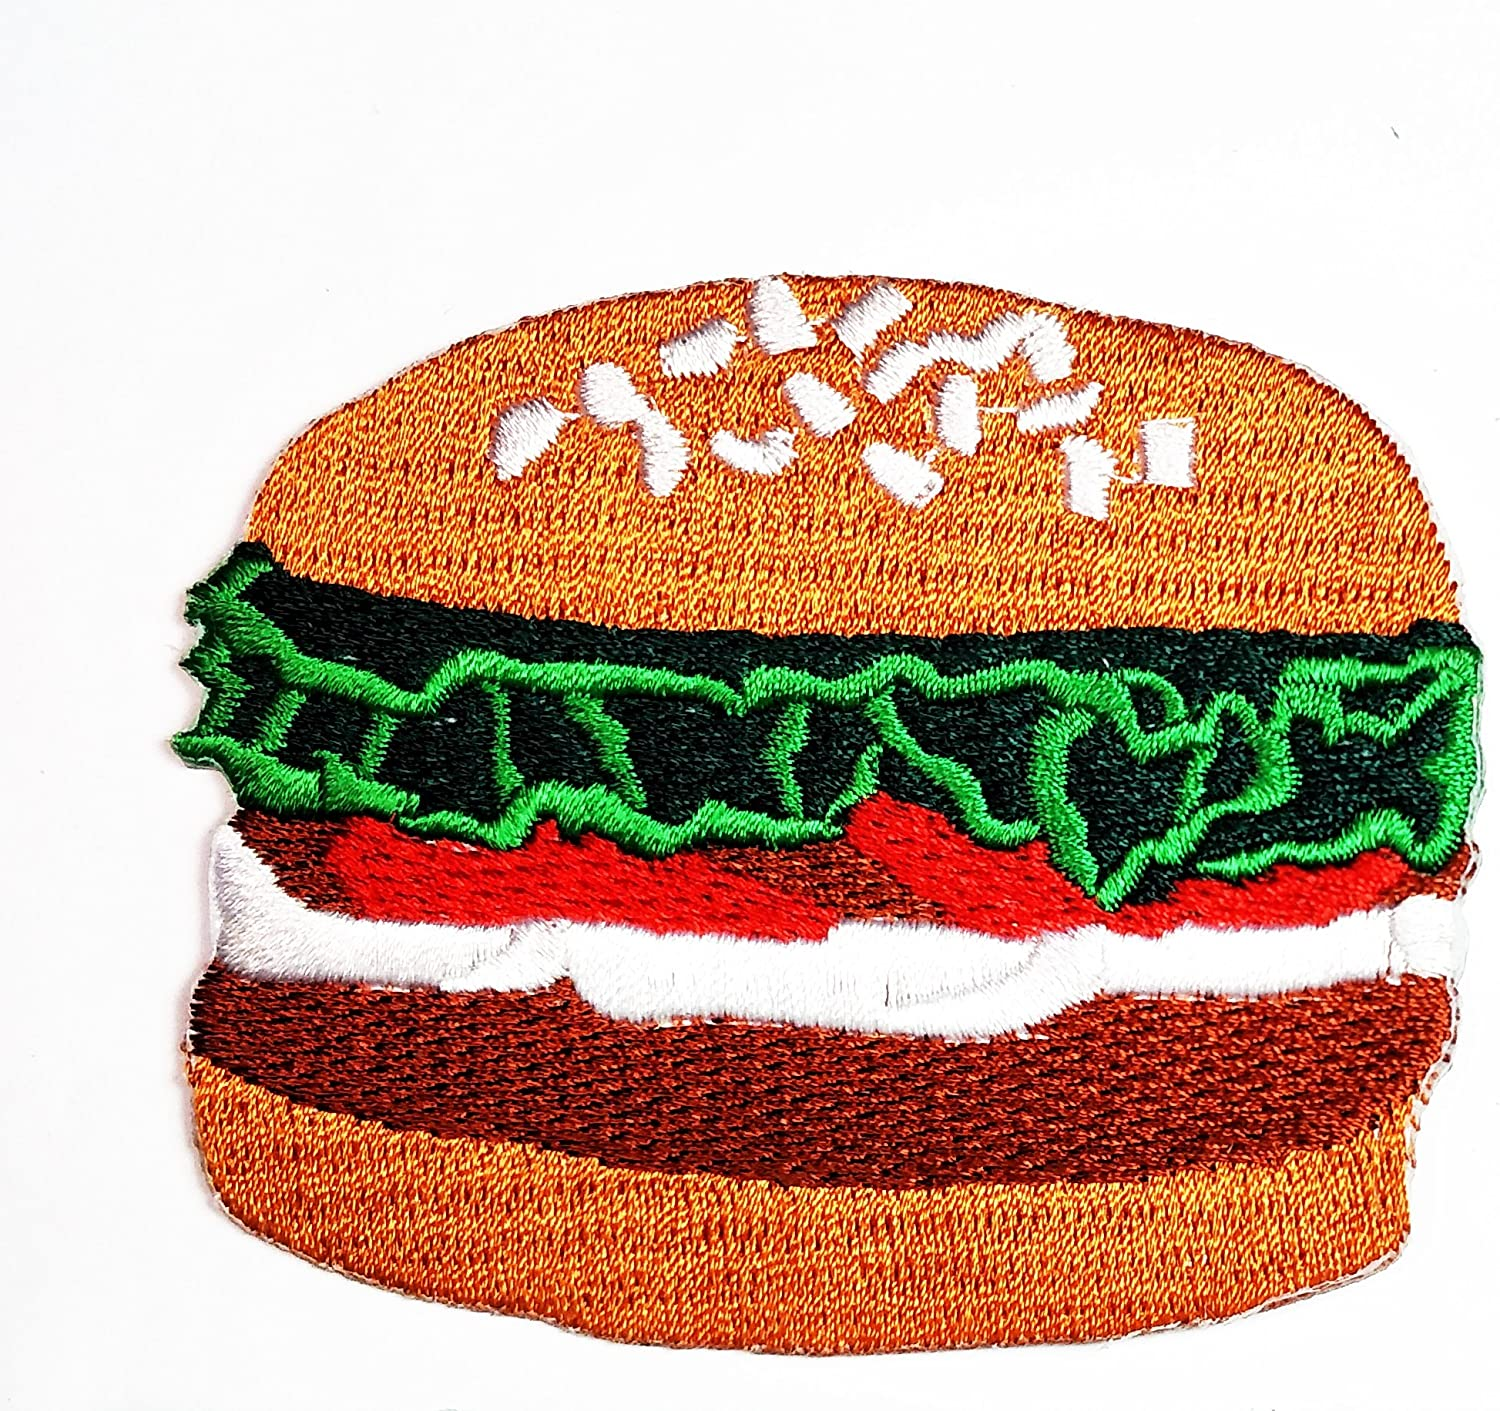 HHO Cheeseburger Hamburger Fast Food Patch Embroidered DIY Patches, Cute Applique Sew Iron on Kids Craft Patch for Bags Jackets Jeans Clothes